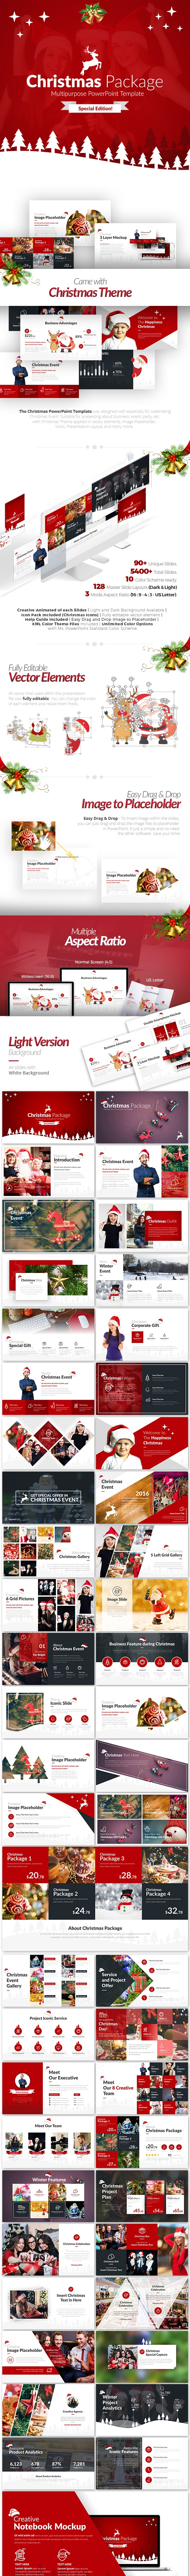 Christmas Package Business PowerPoint Template - Business PowerPoint Templates